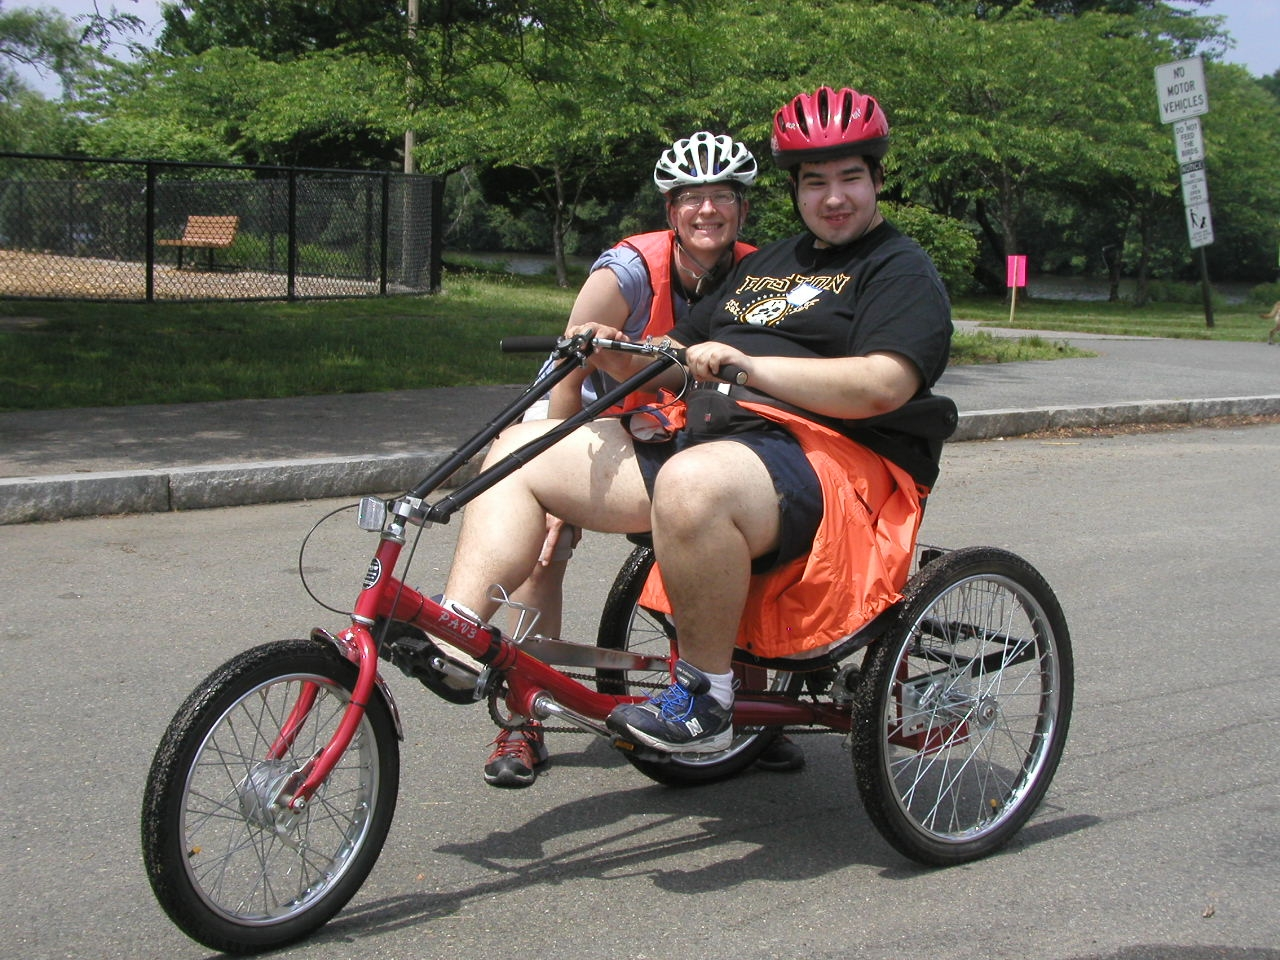 Bikes For Overweight People The Personal Activity Vehicle